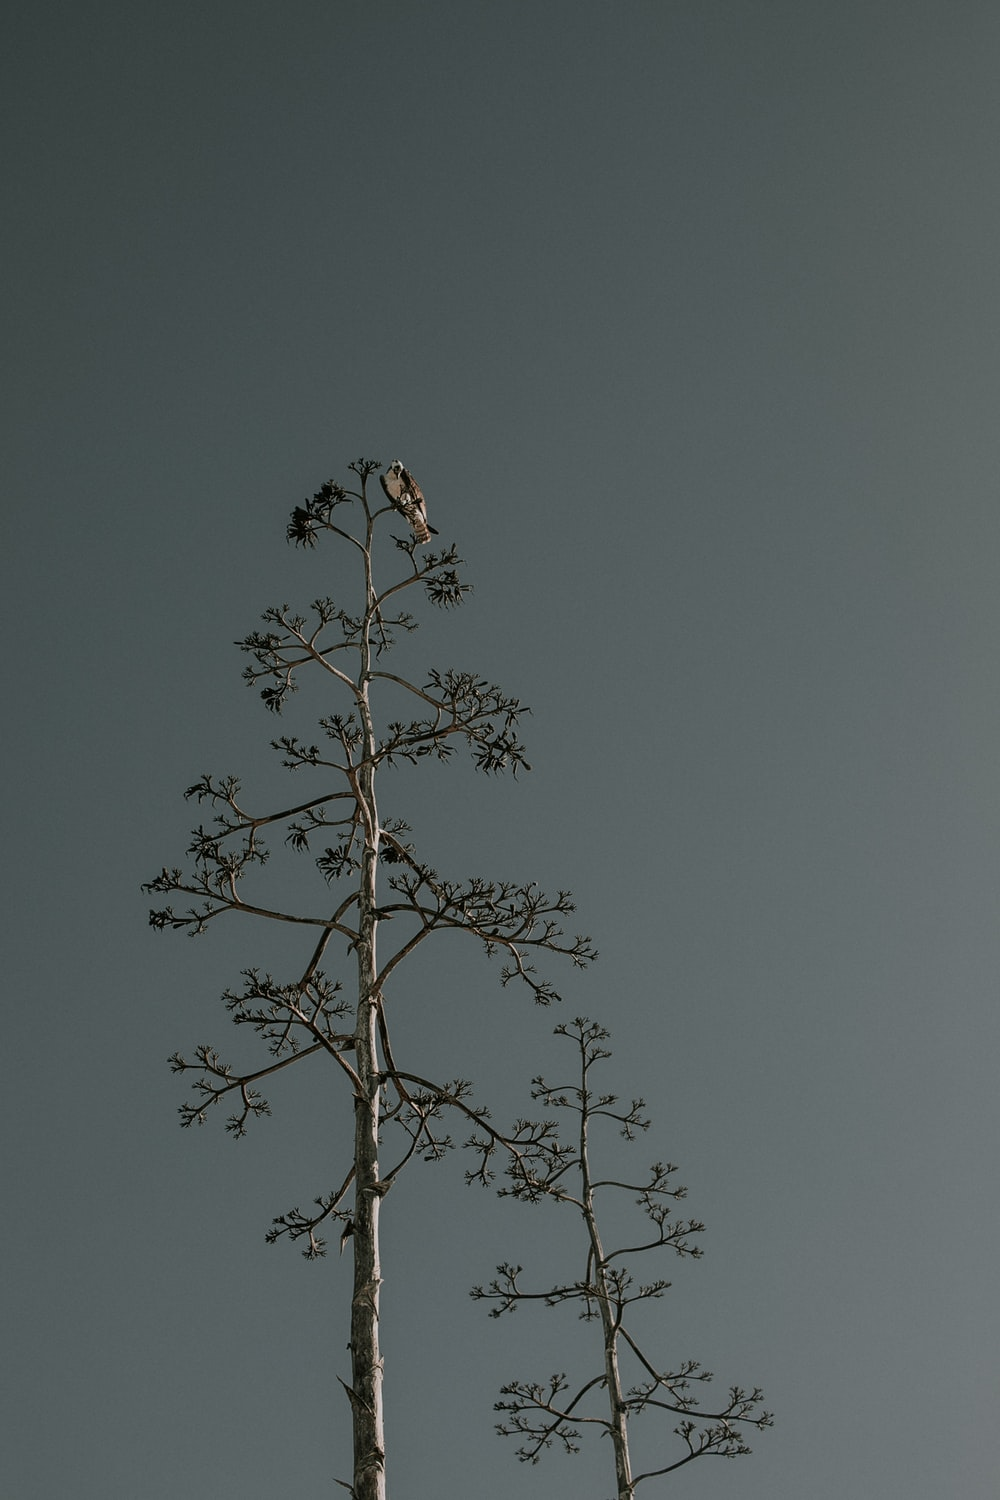 bird perched on top of tree during daytime